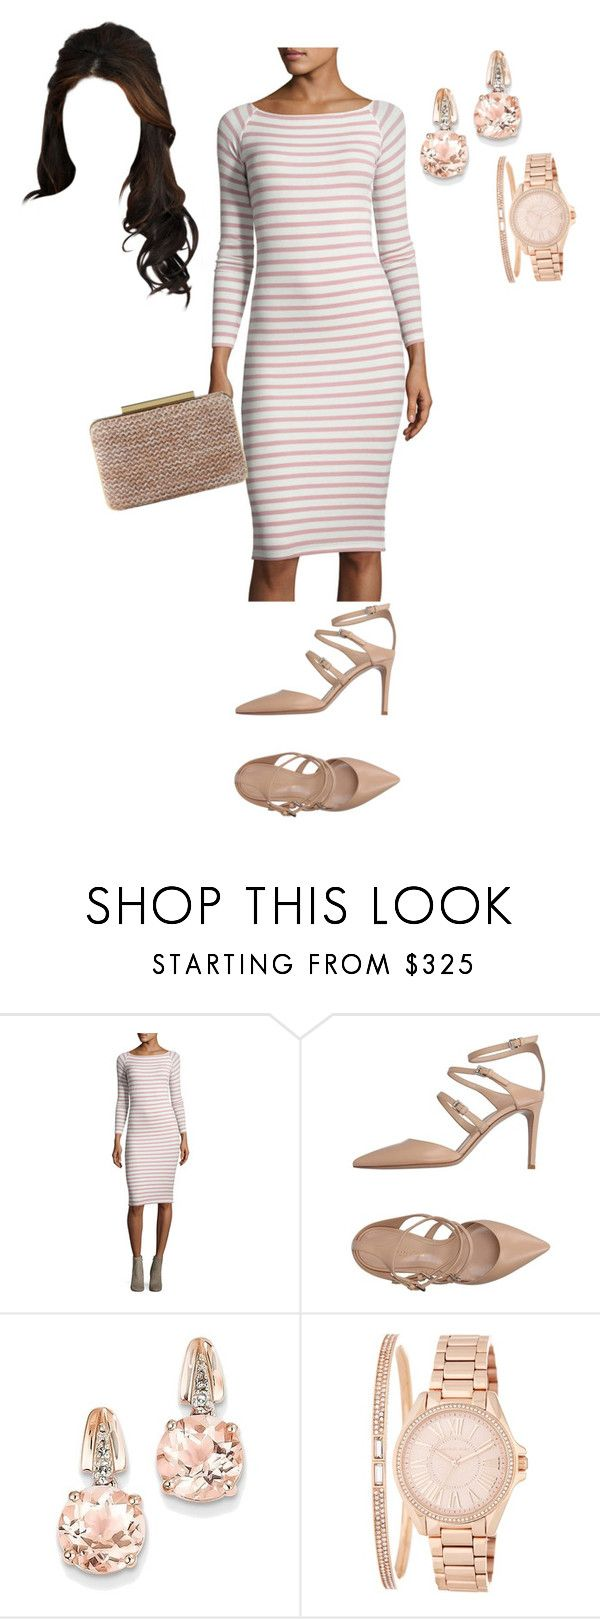 """""""Untitled #955"""" by lilymae1997 ❤ liked on Polyvore featuring ATM by Anthony Thomas Melillo, Gianvito Rossi, L.K.Bennett, BillyTheTree and MICHAEL Michael Kors"""